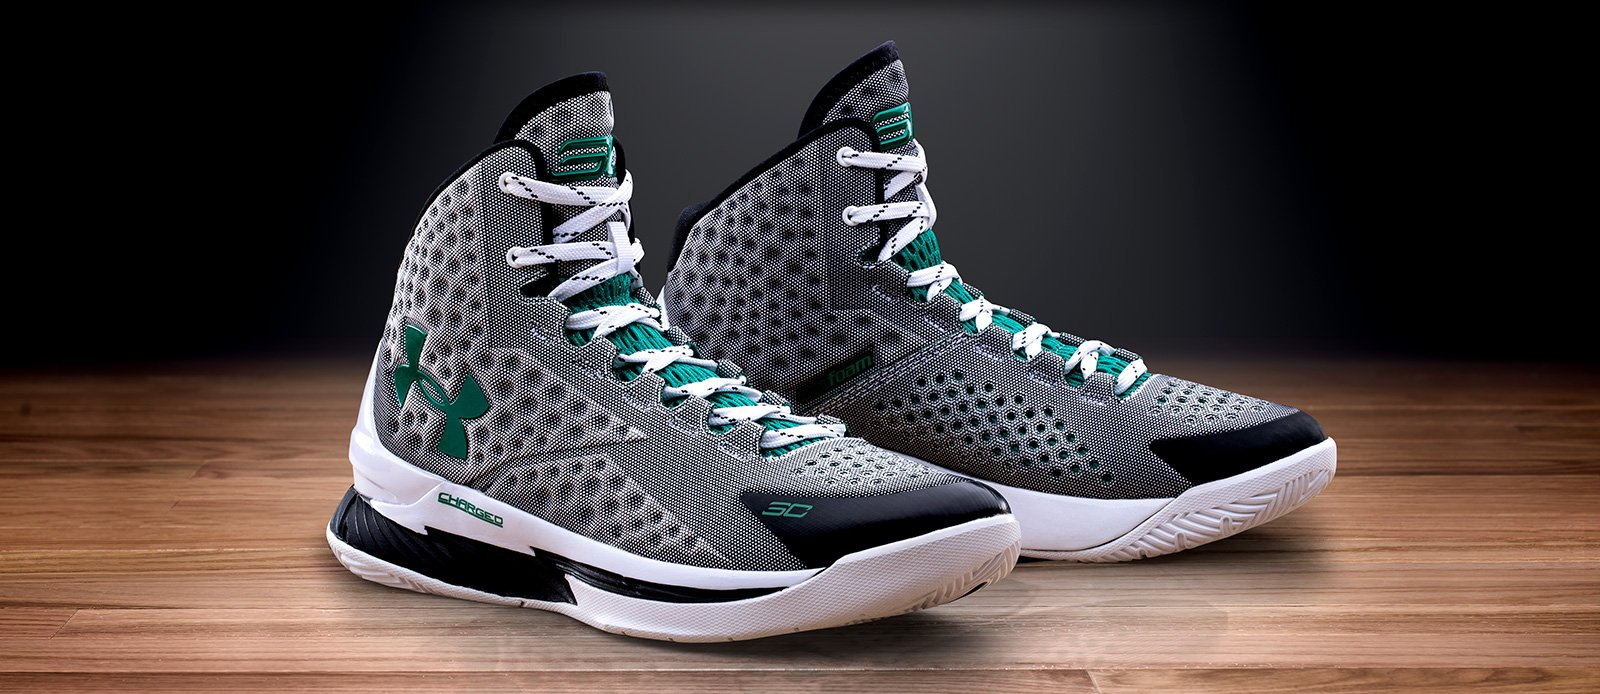 Under Armour Shoes Basketball Low